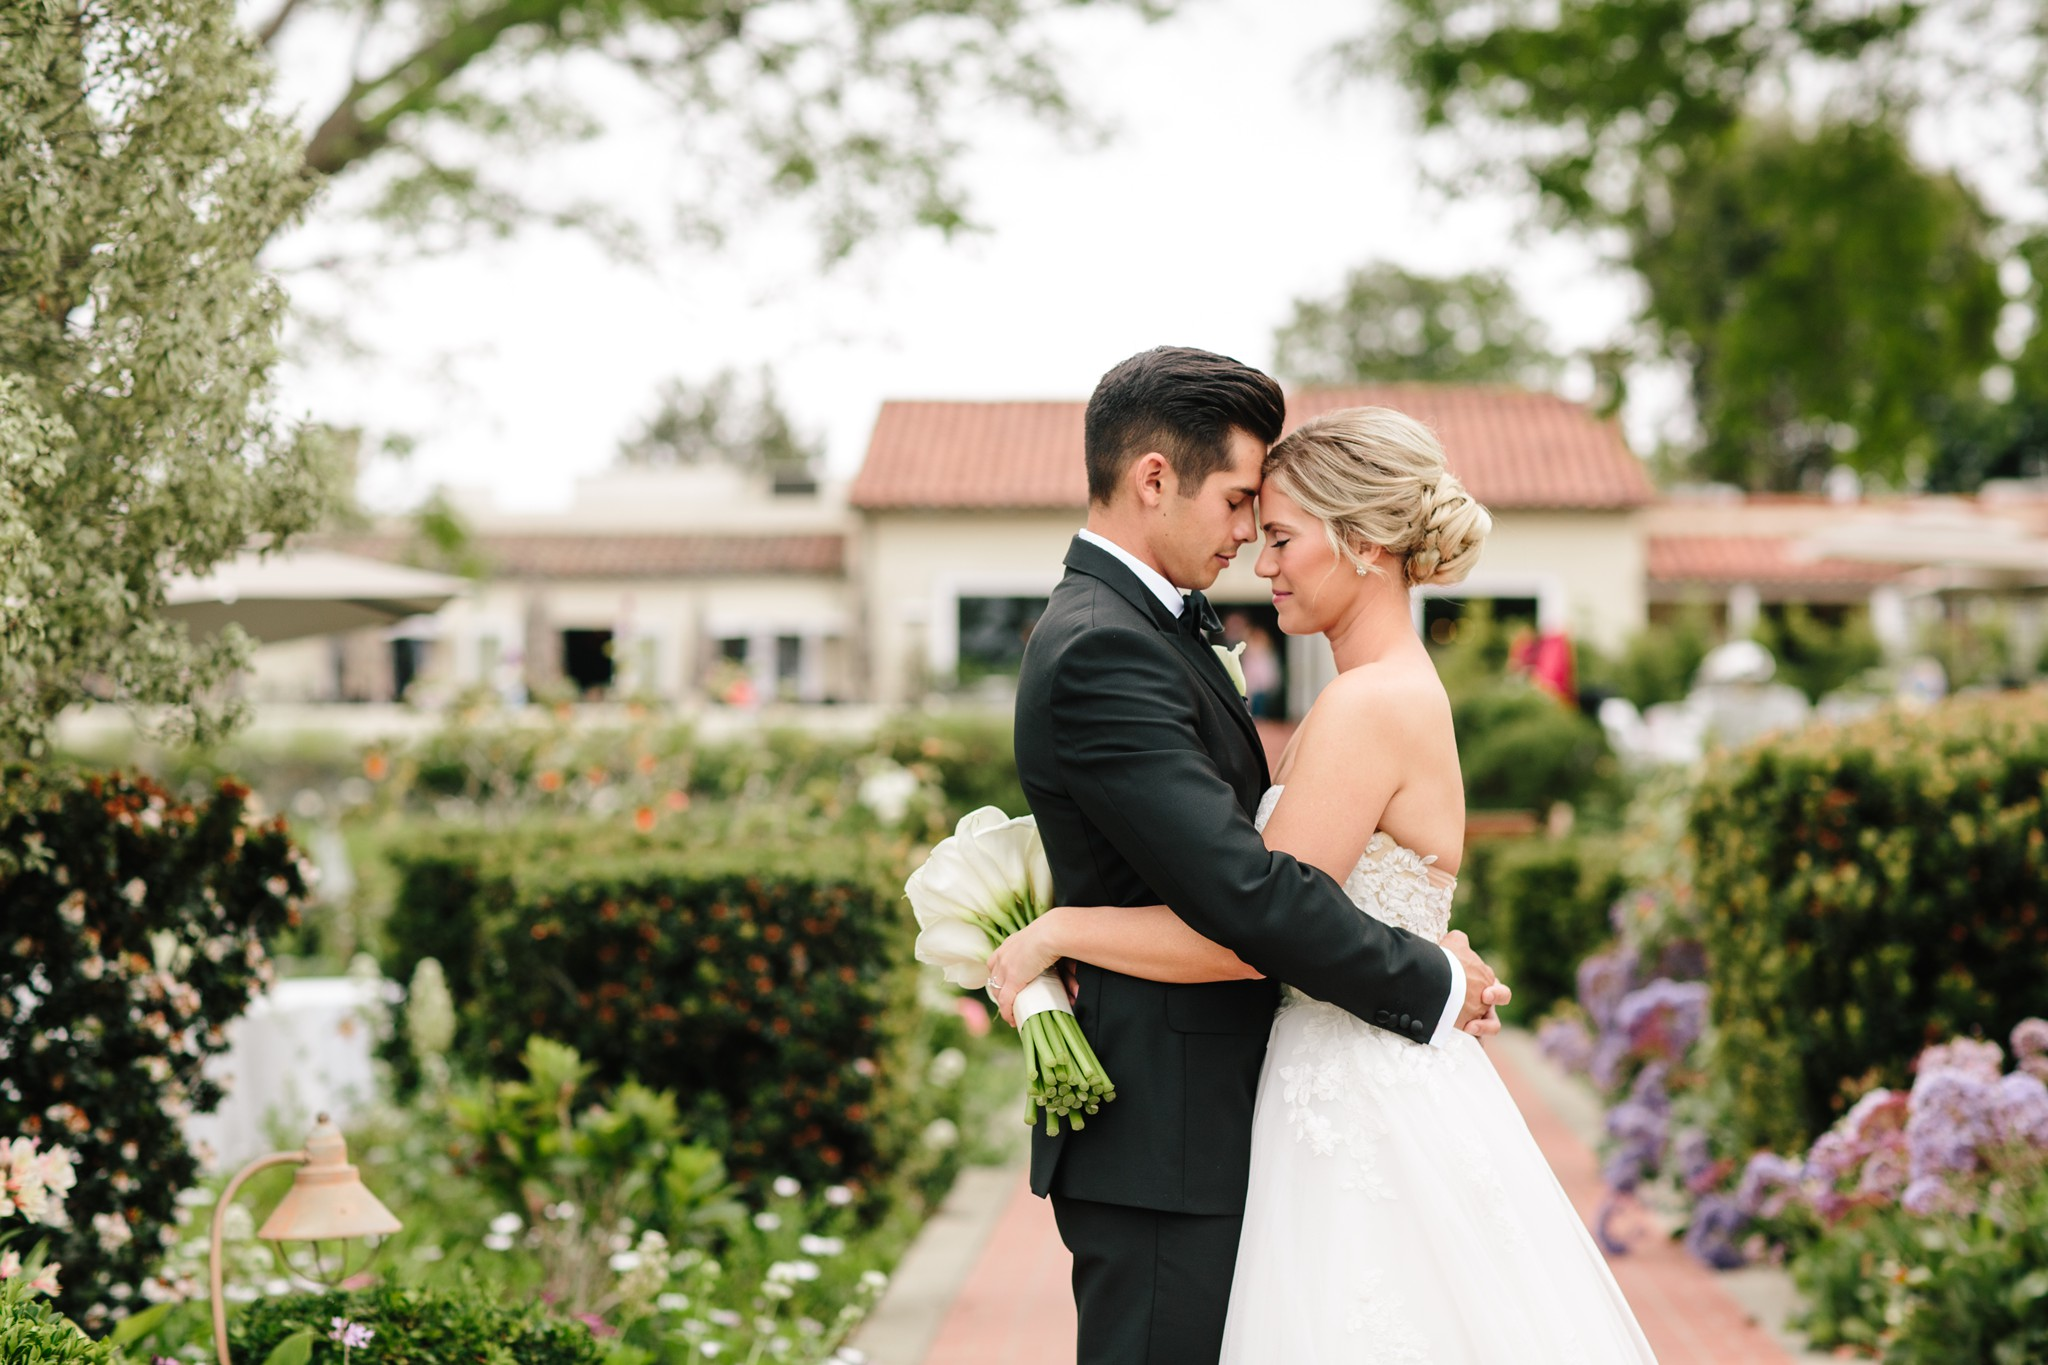 THEDELAURAS_THE_INN_AT_RANCHO_SANTA_FE_WEDDING_BRIDAL BOUQUET_BLOG004.jpg